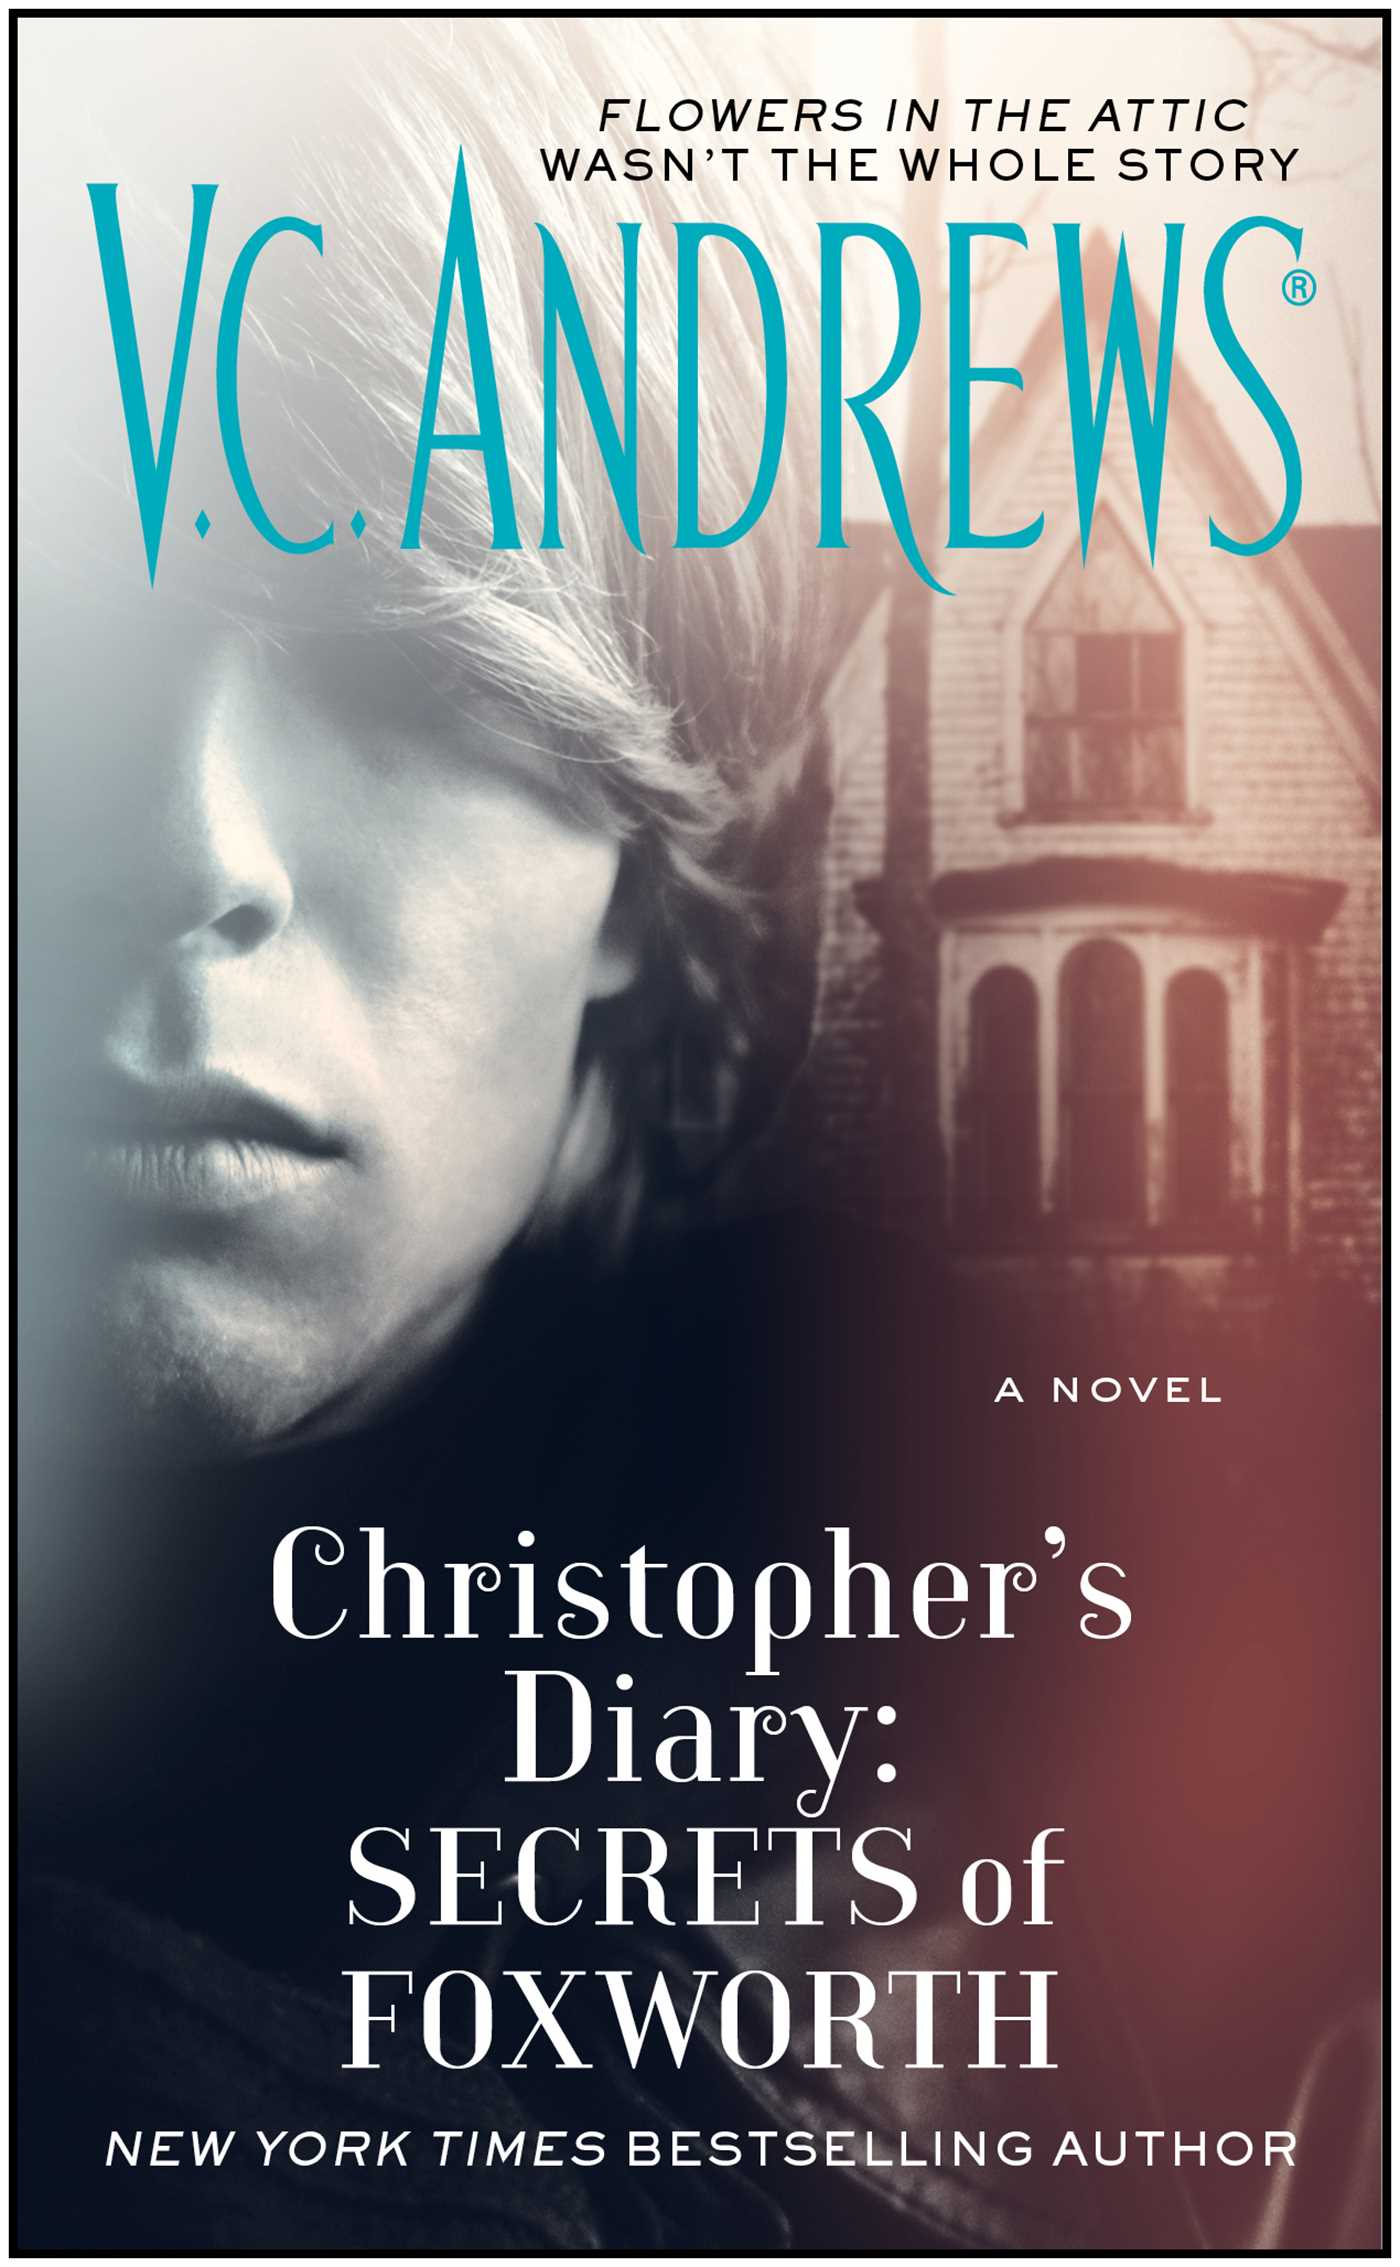 Christophers diary secrets of foxworth 9781476790589 hr